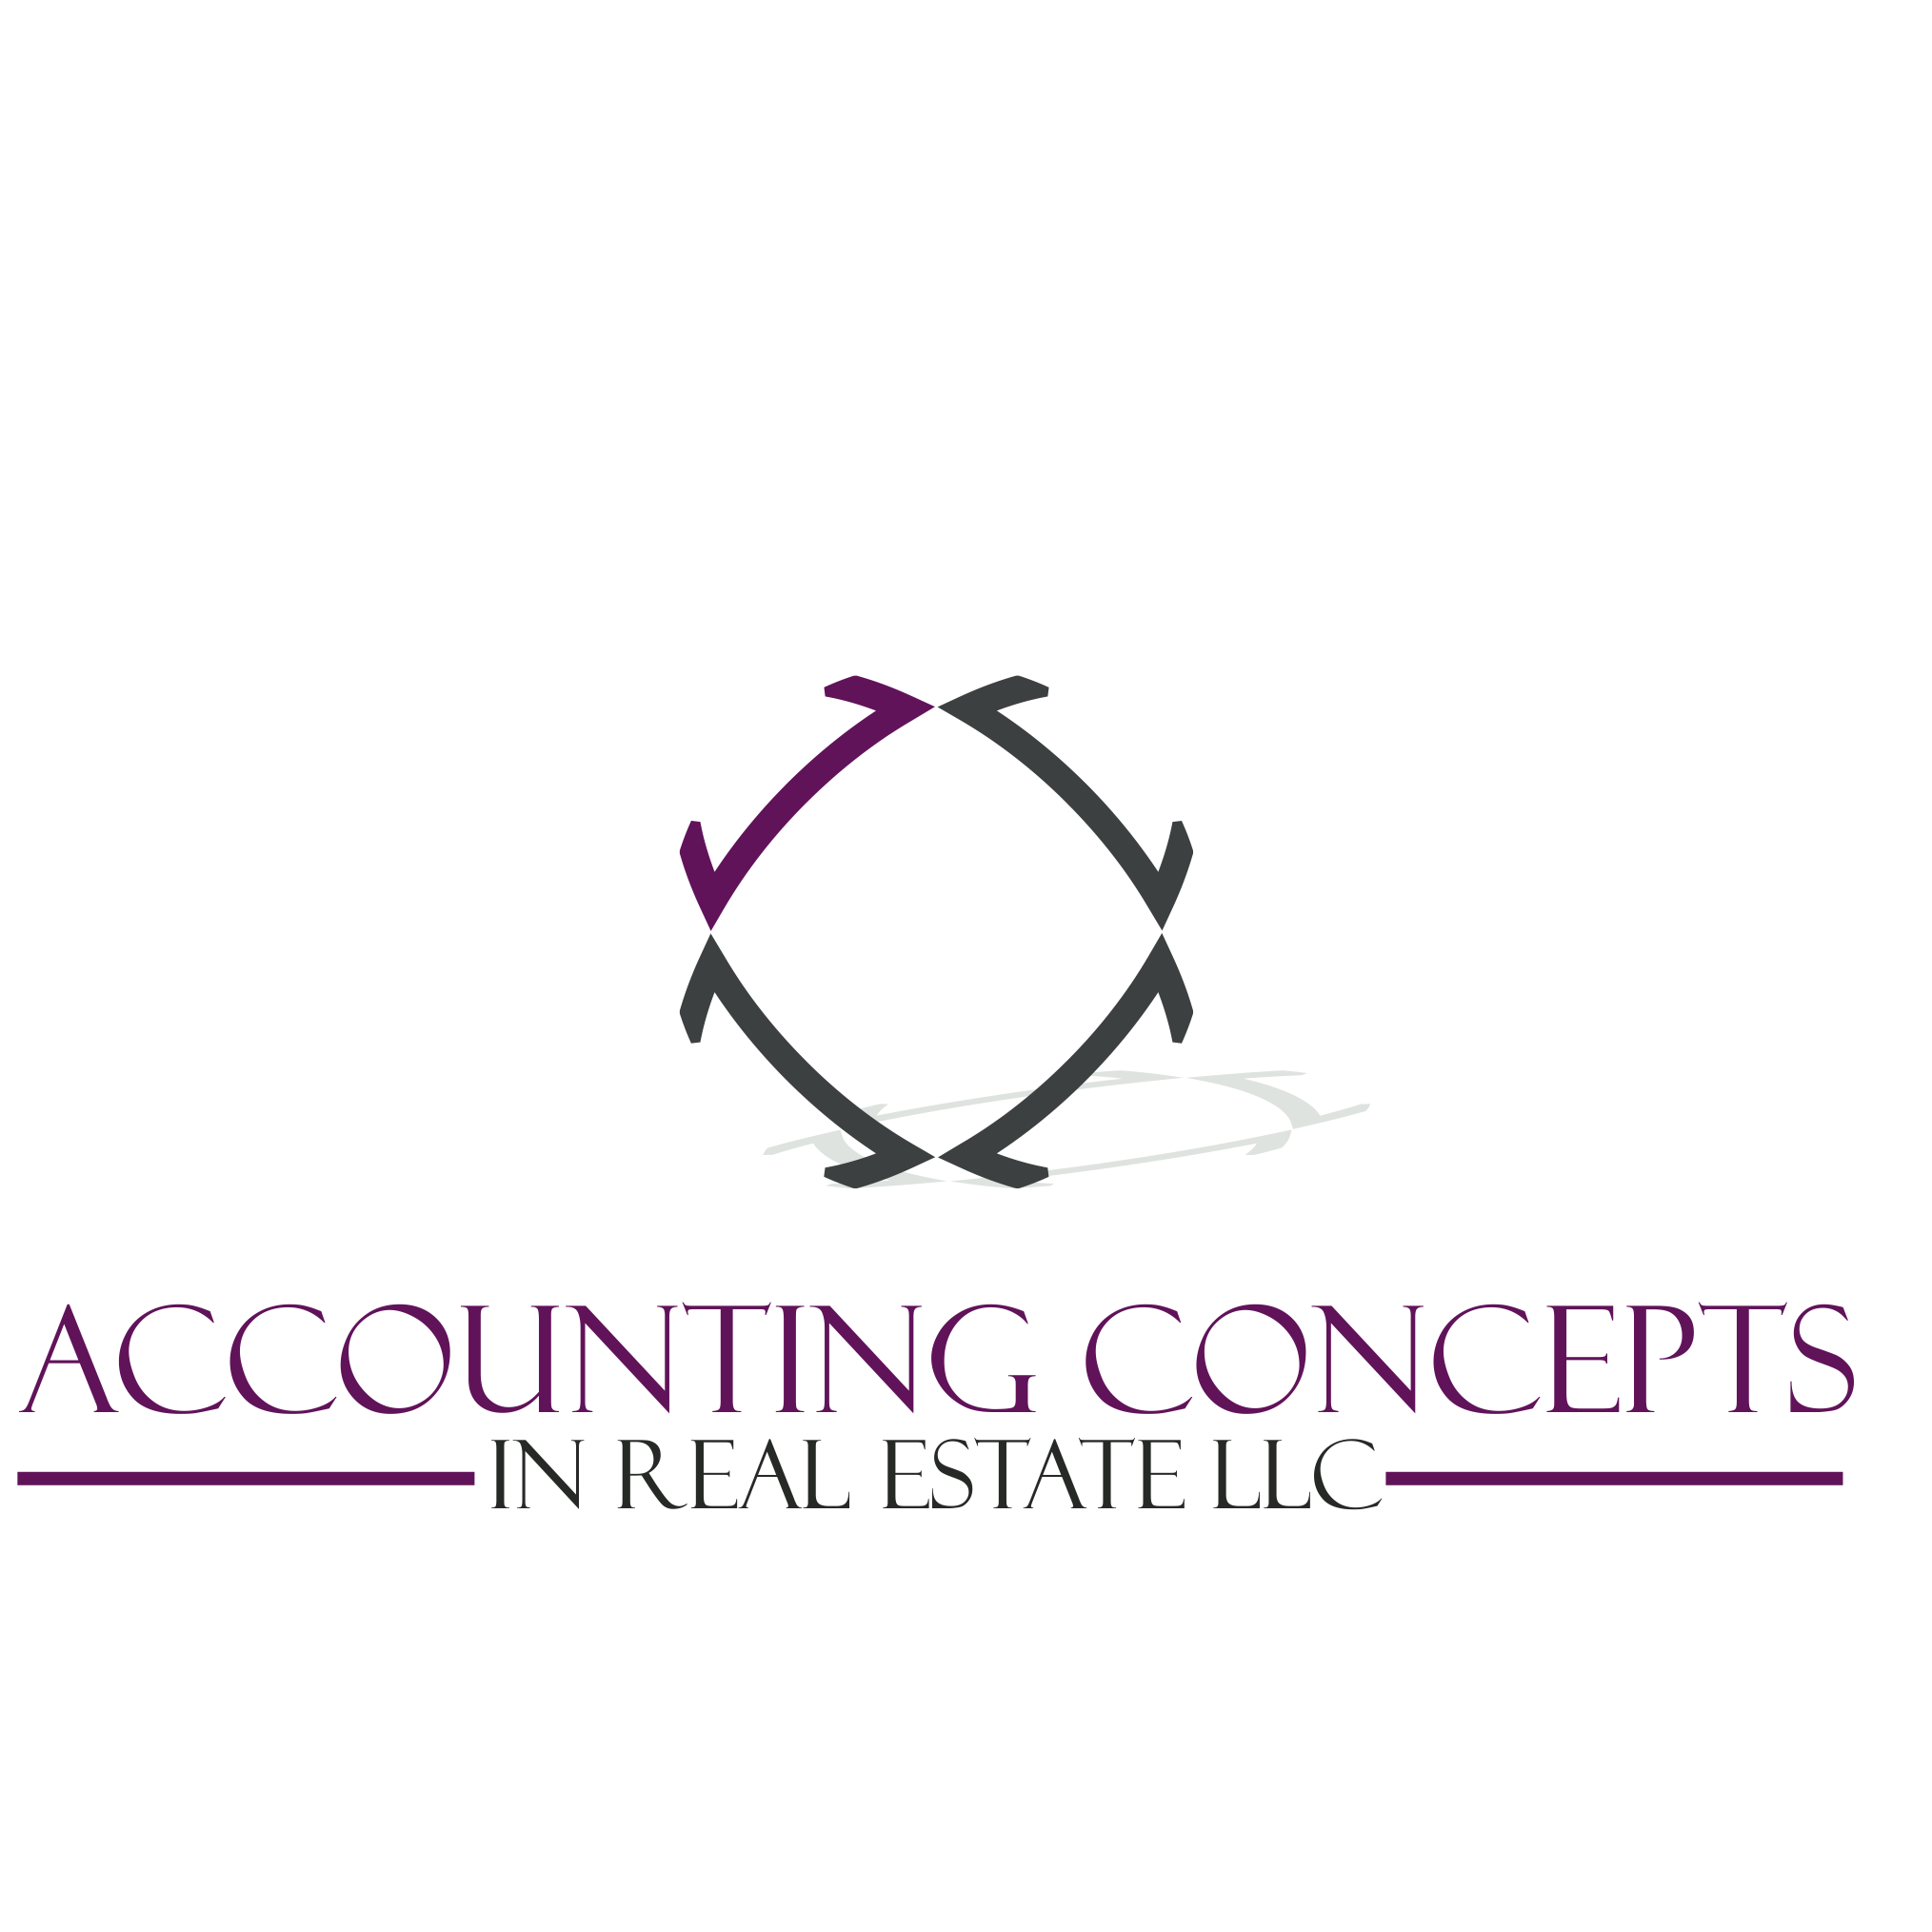 Accounting Concepts in Real Estate, LLC